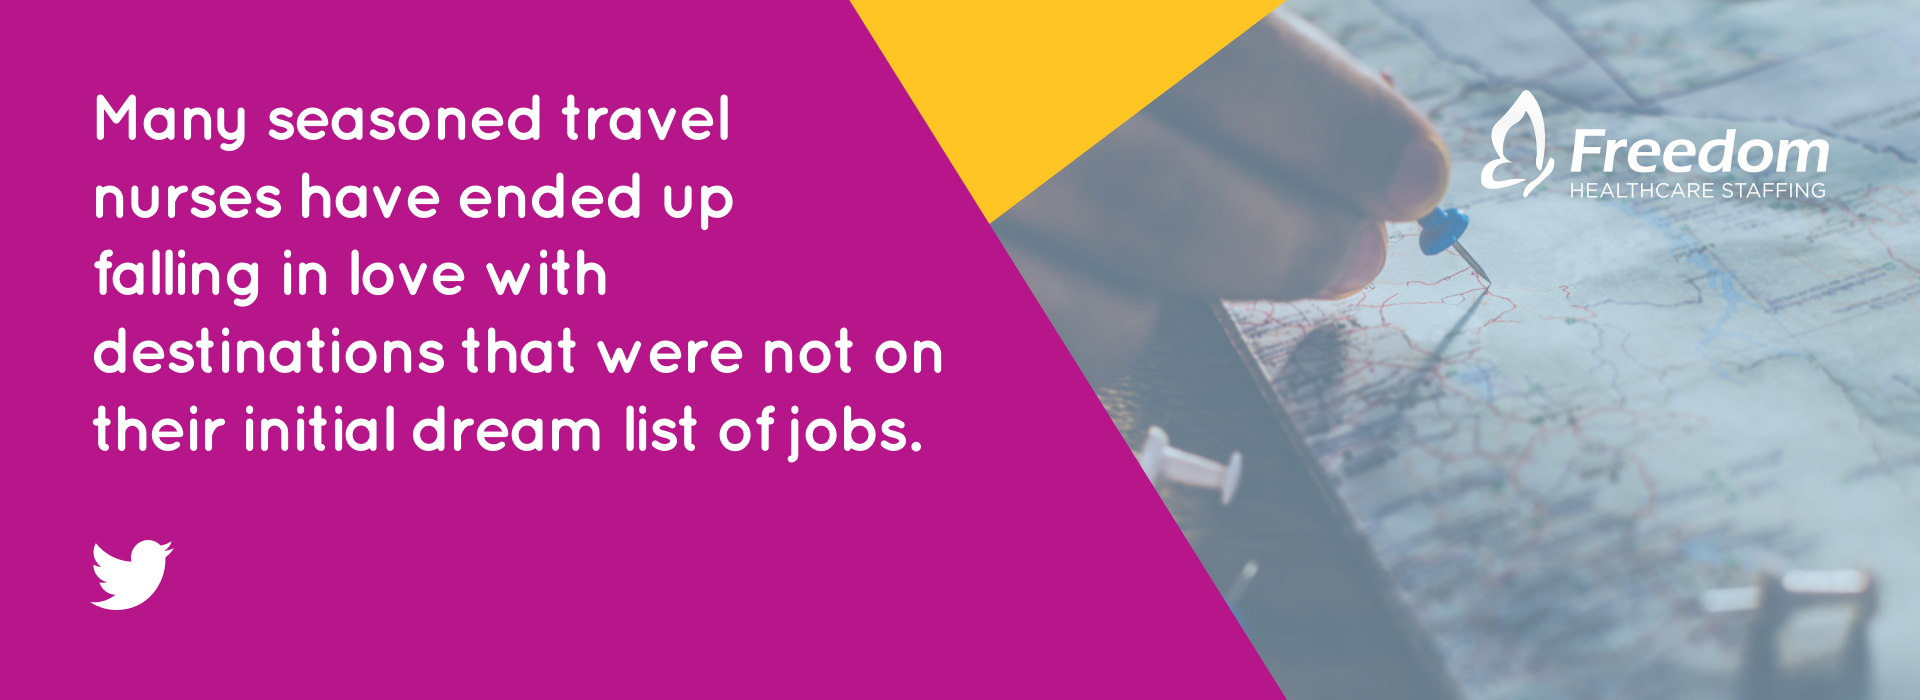 Many seasoned travel nurses have ended up falling in love with destinations that were not on their initial dream list of jobs.